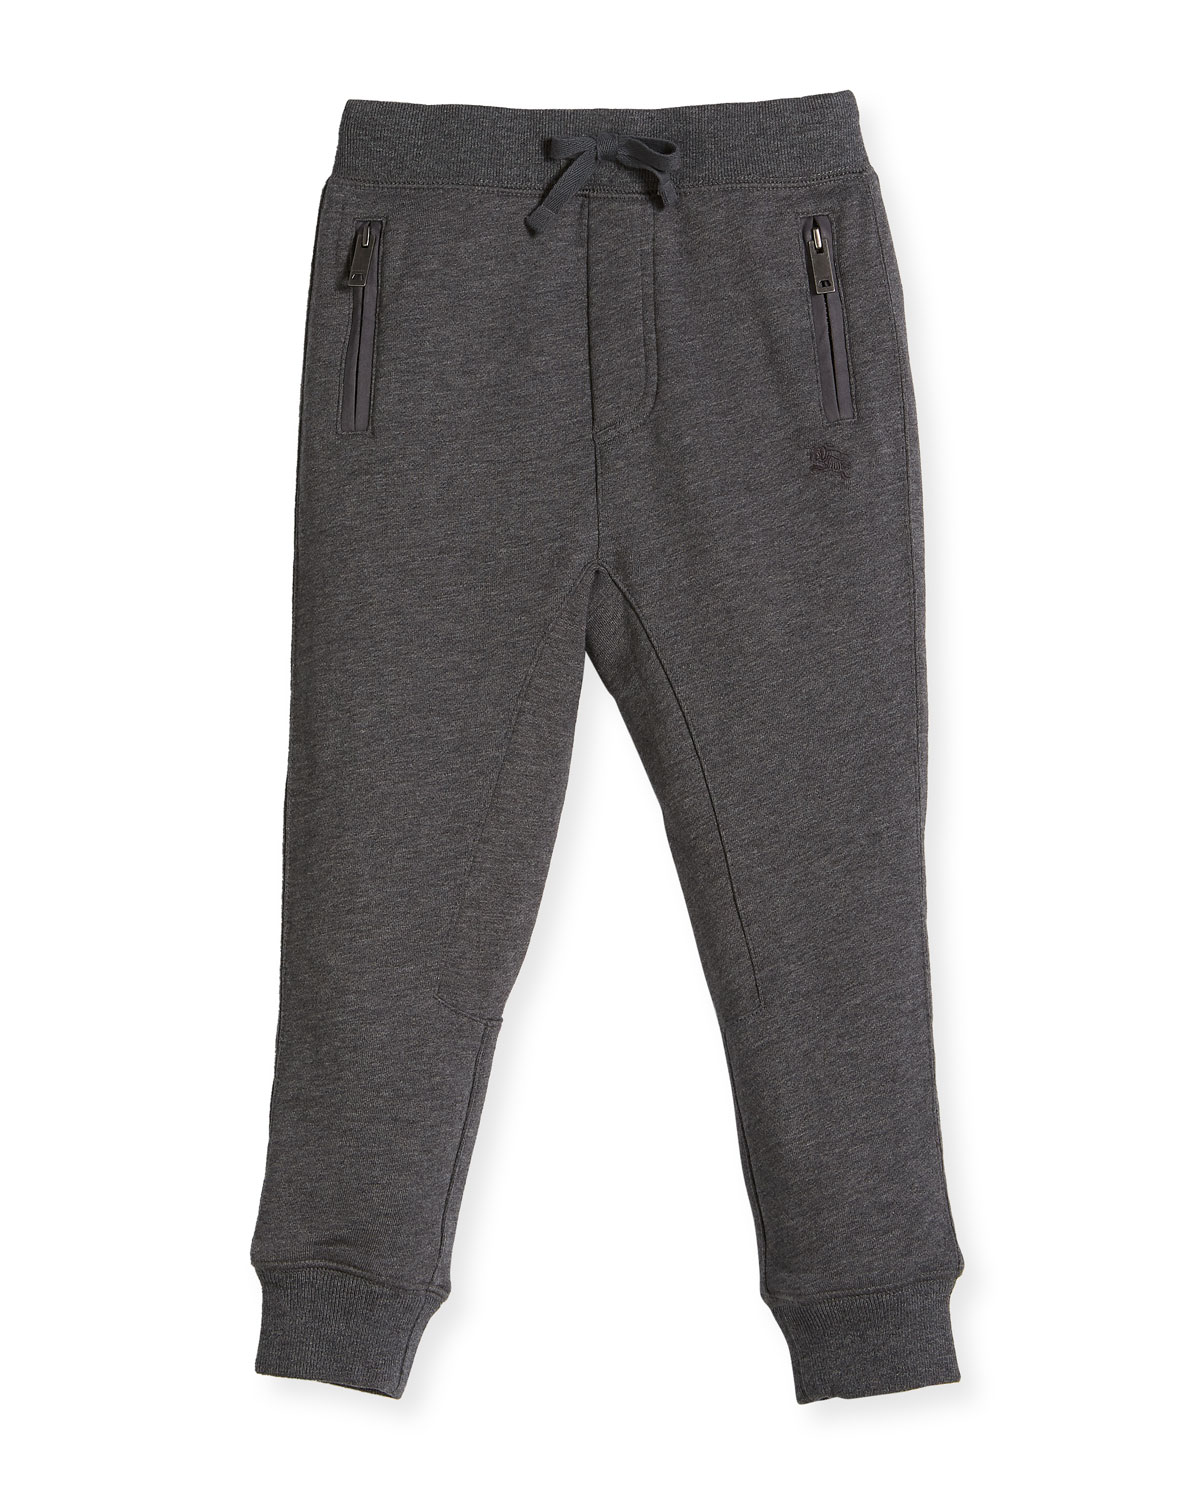 Phill Cotton Track Pants, Charcoal, Size 4-14